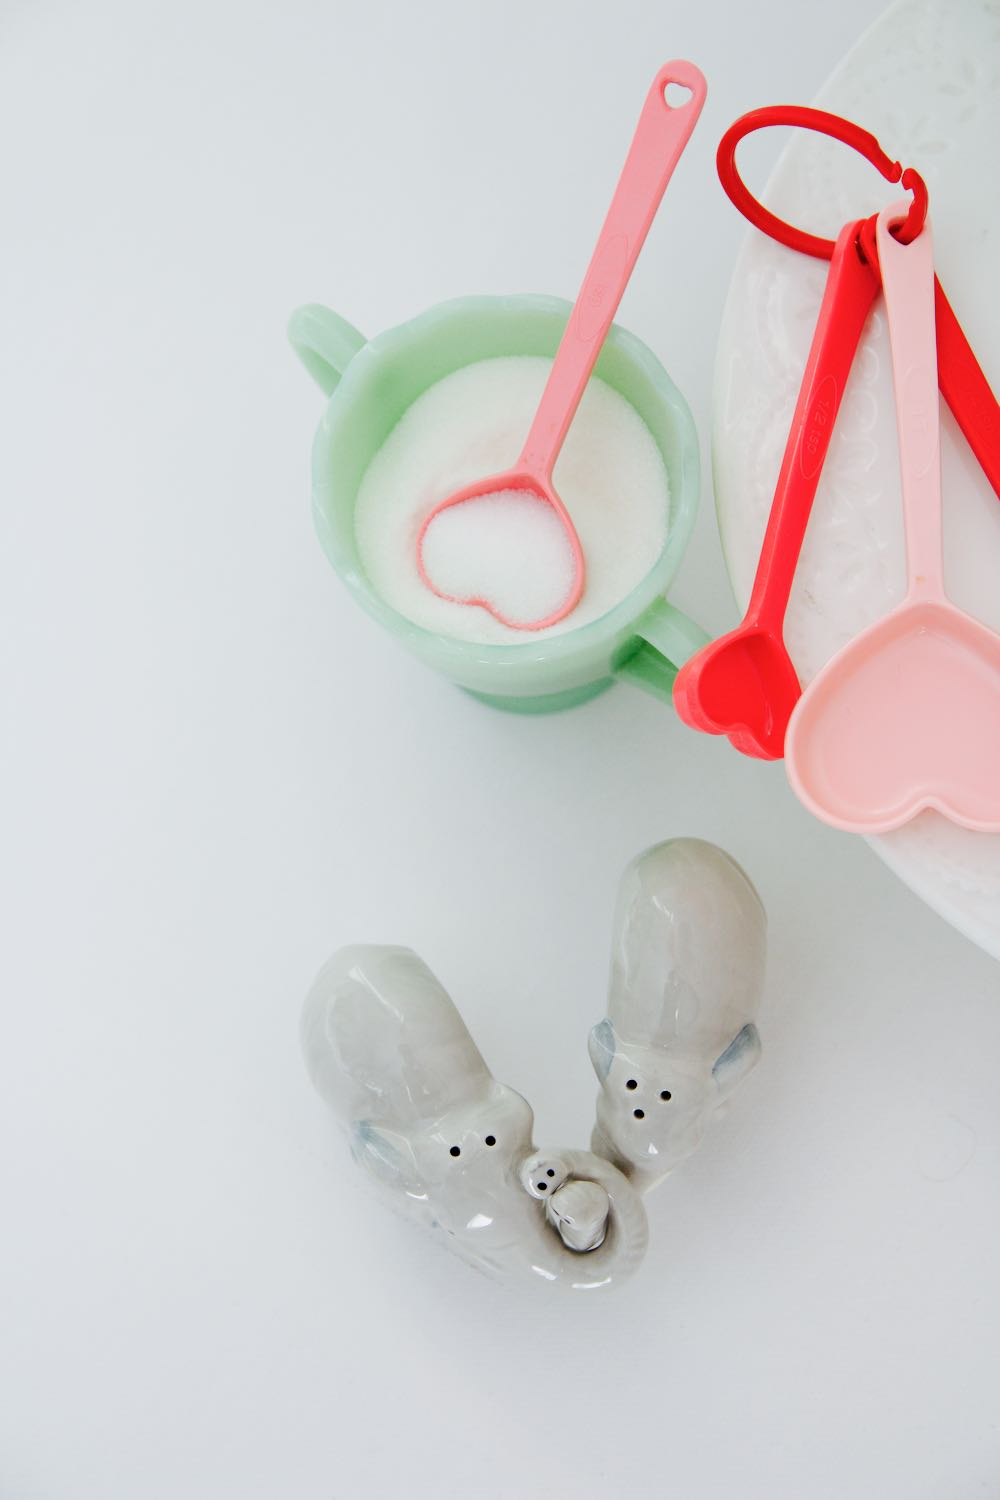 Pink and red measuring spoons from Modcloth